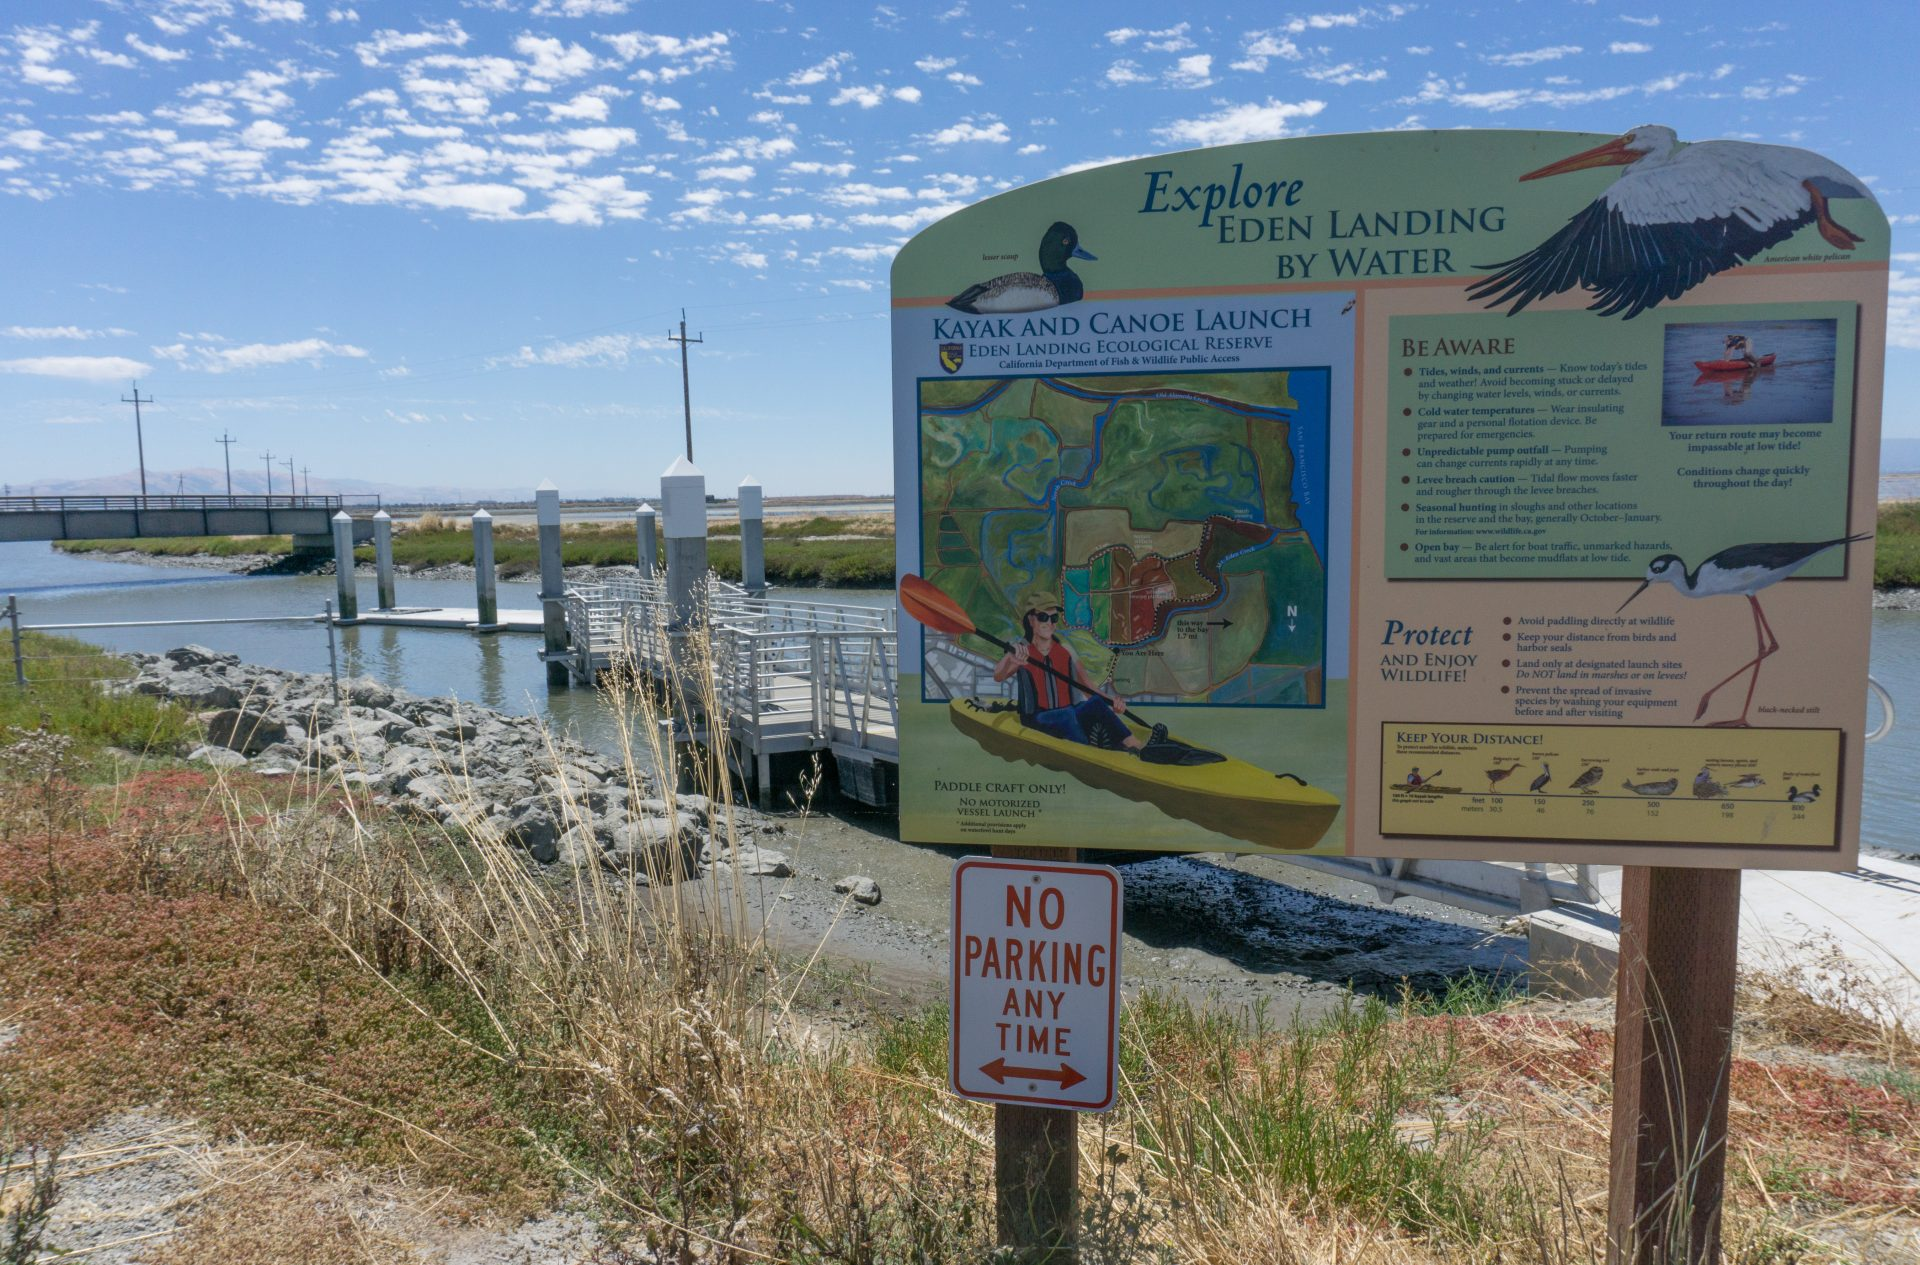 sign: Explore Eden Landing by Water, Kayak and Canoe Launch. Other text illegibile